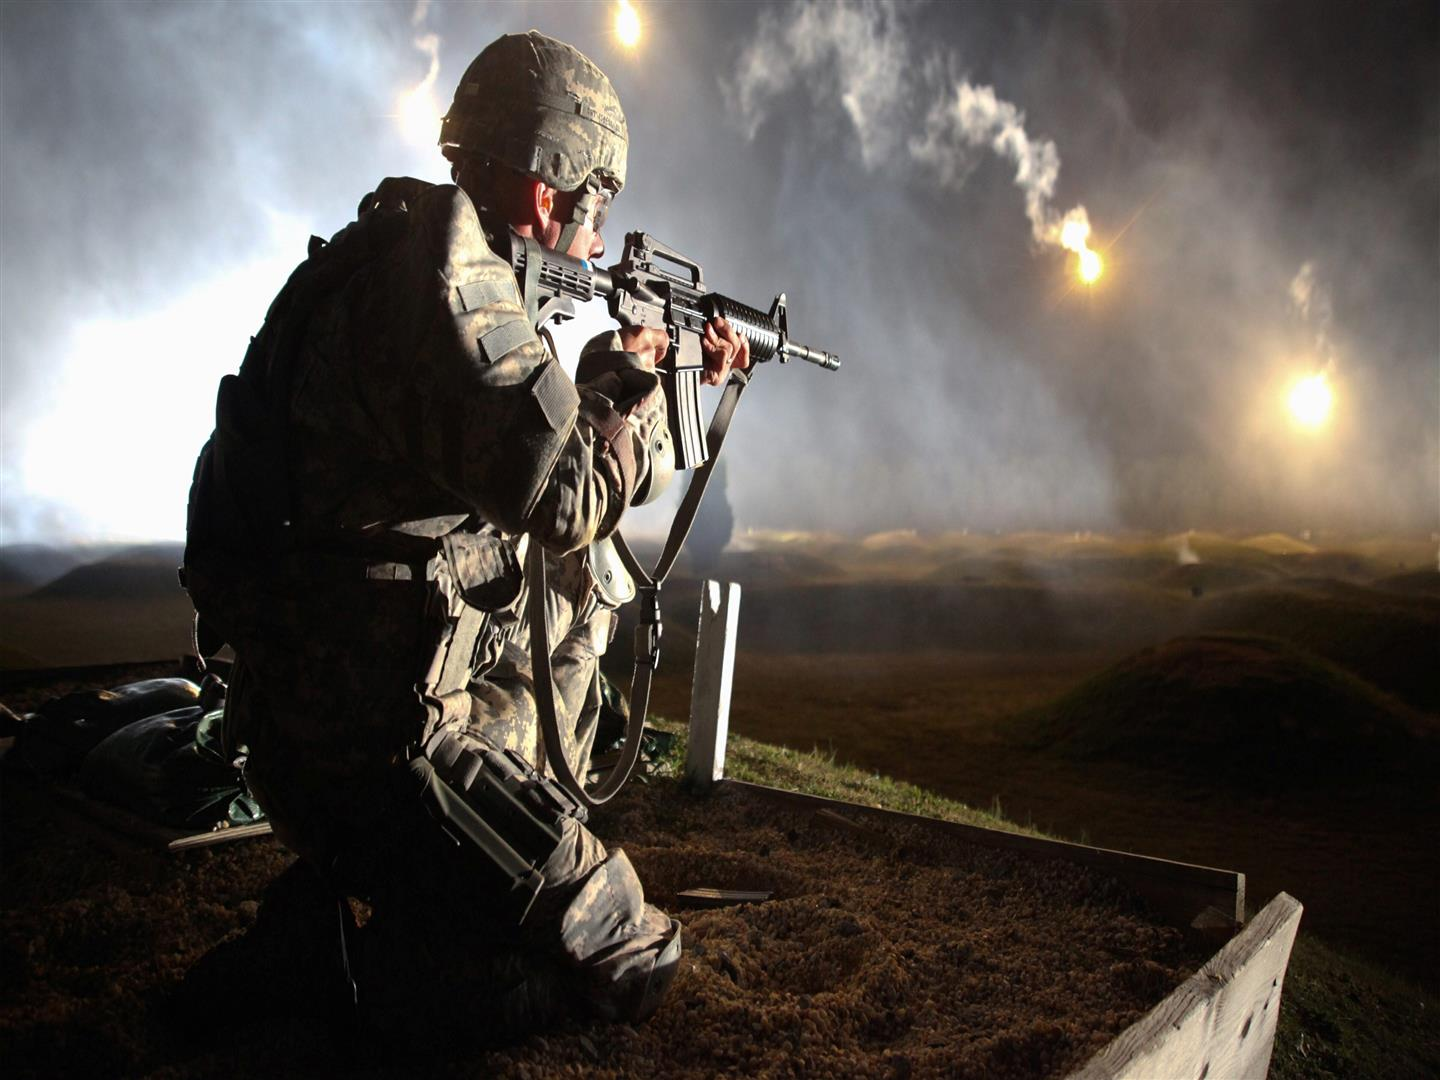 1440x1080 Army Soldier Petroling at Night Photo